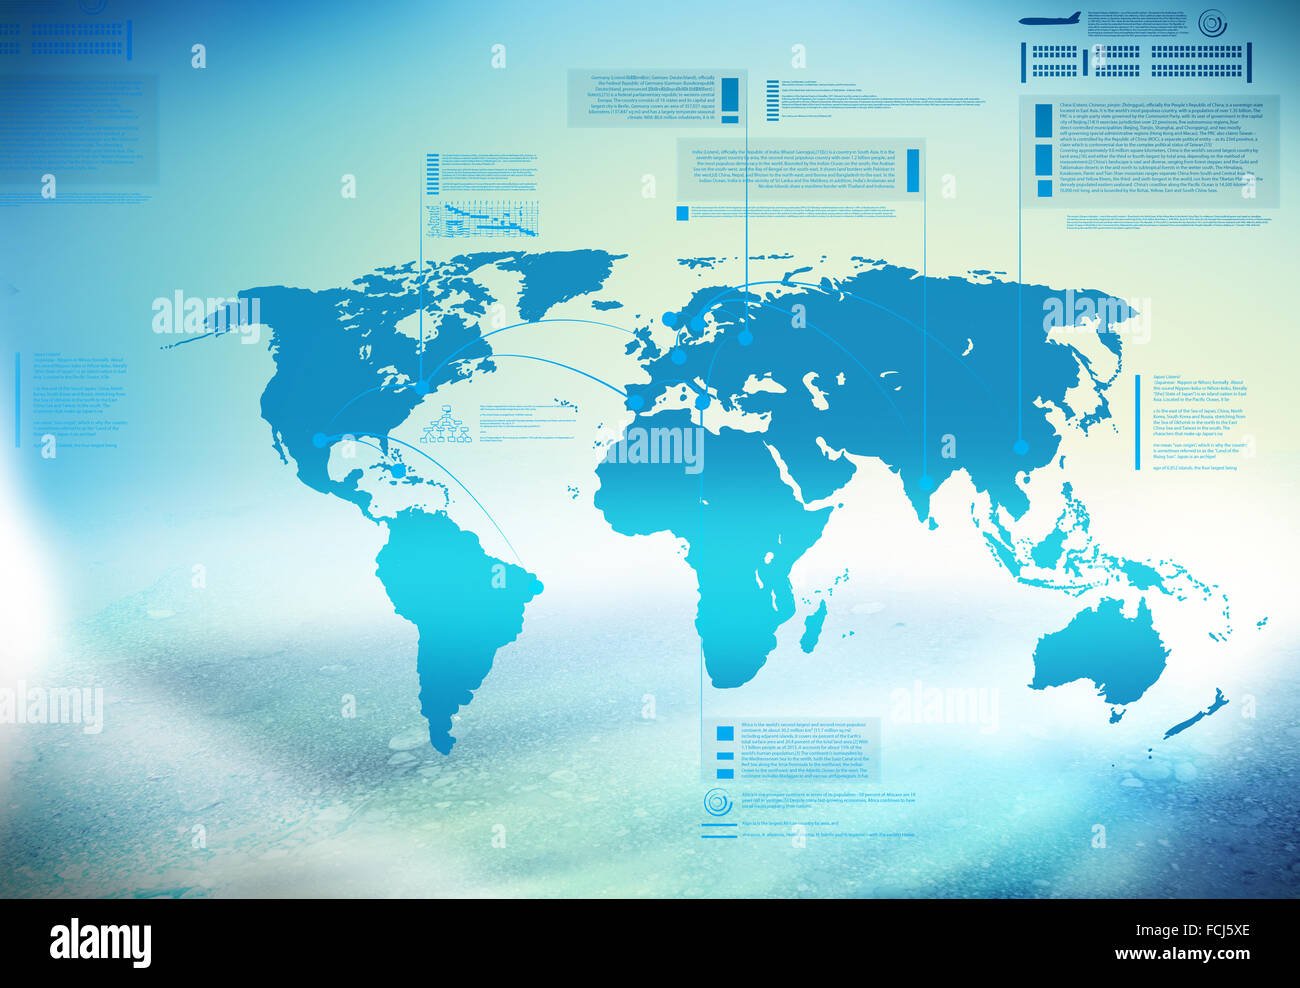 Background conceptual blue image with world map - Stock Image